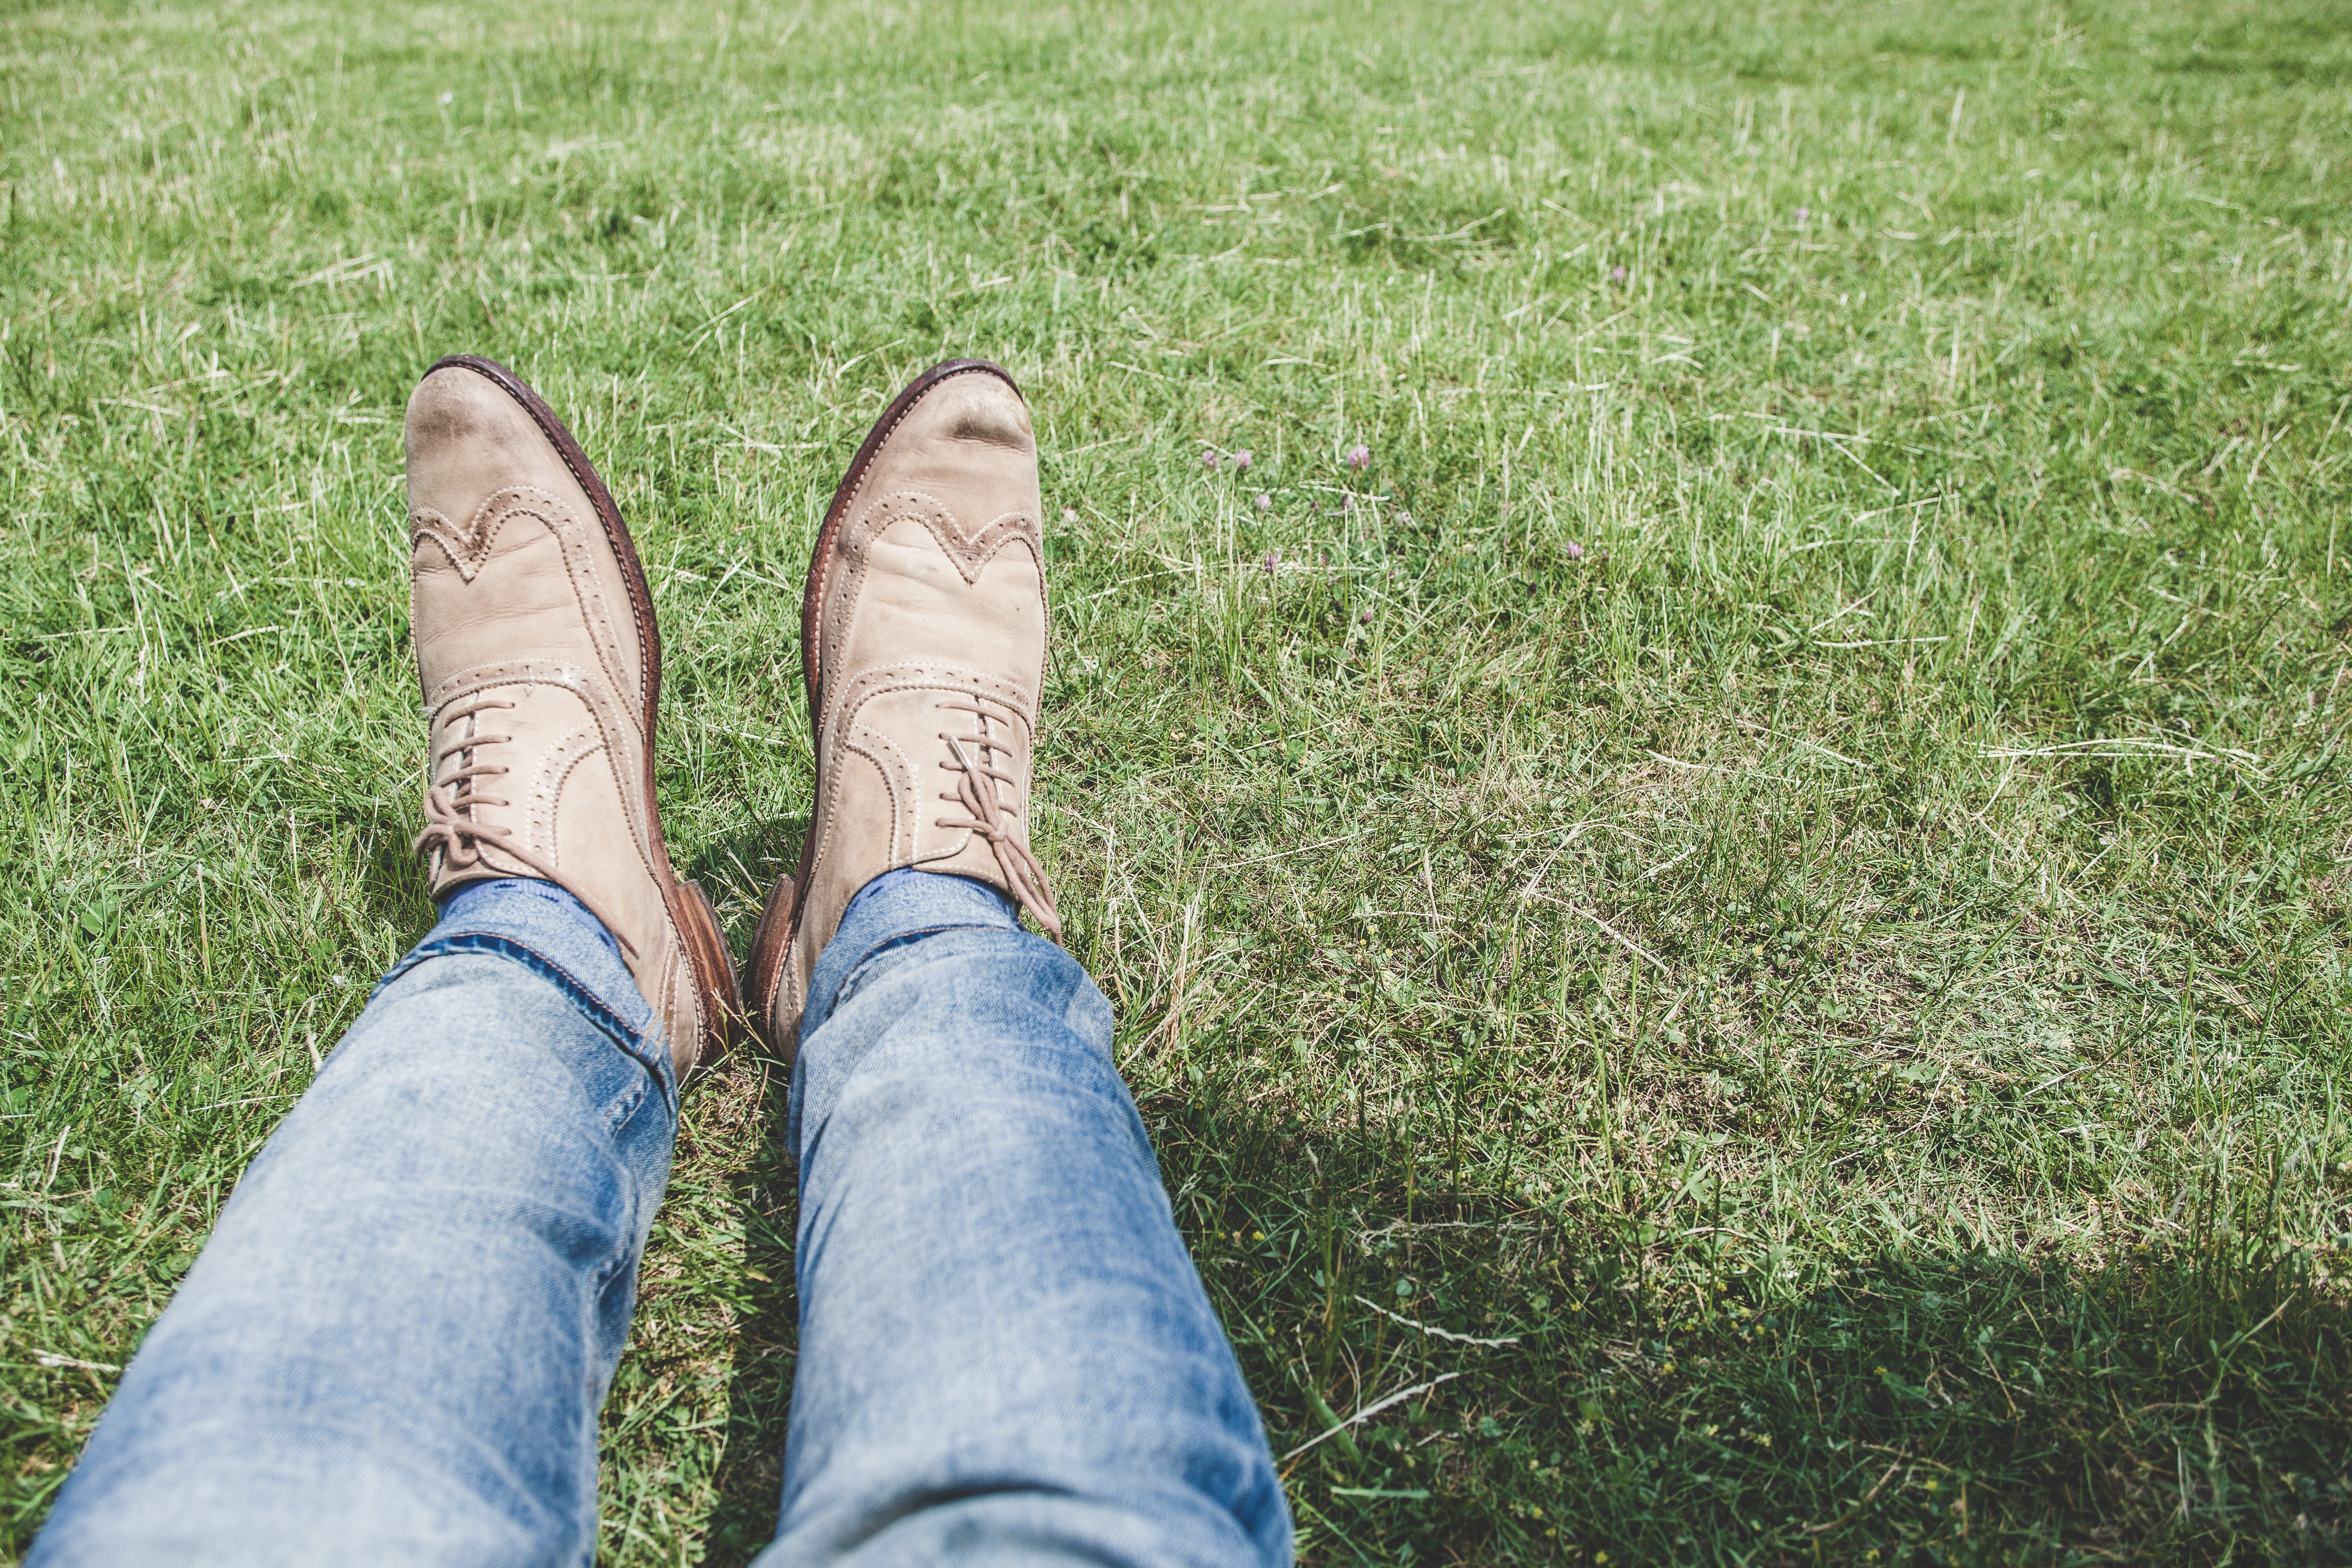 Person Wearing Blue Denim Jeans Sitting on Grass